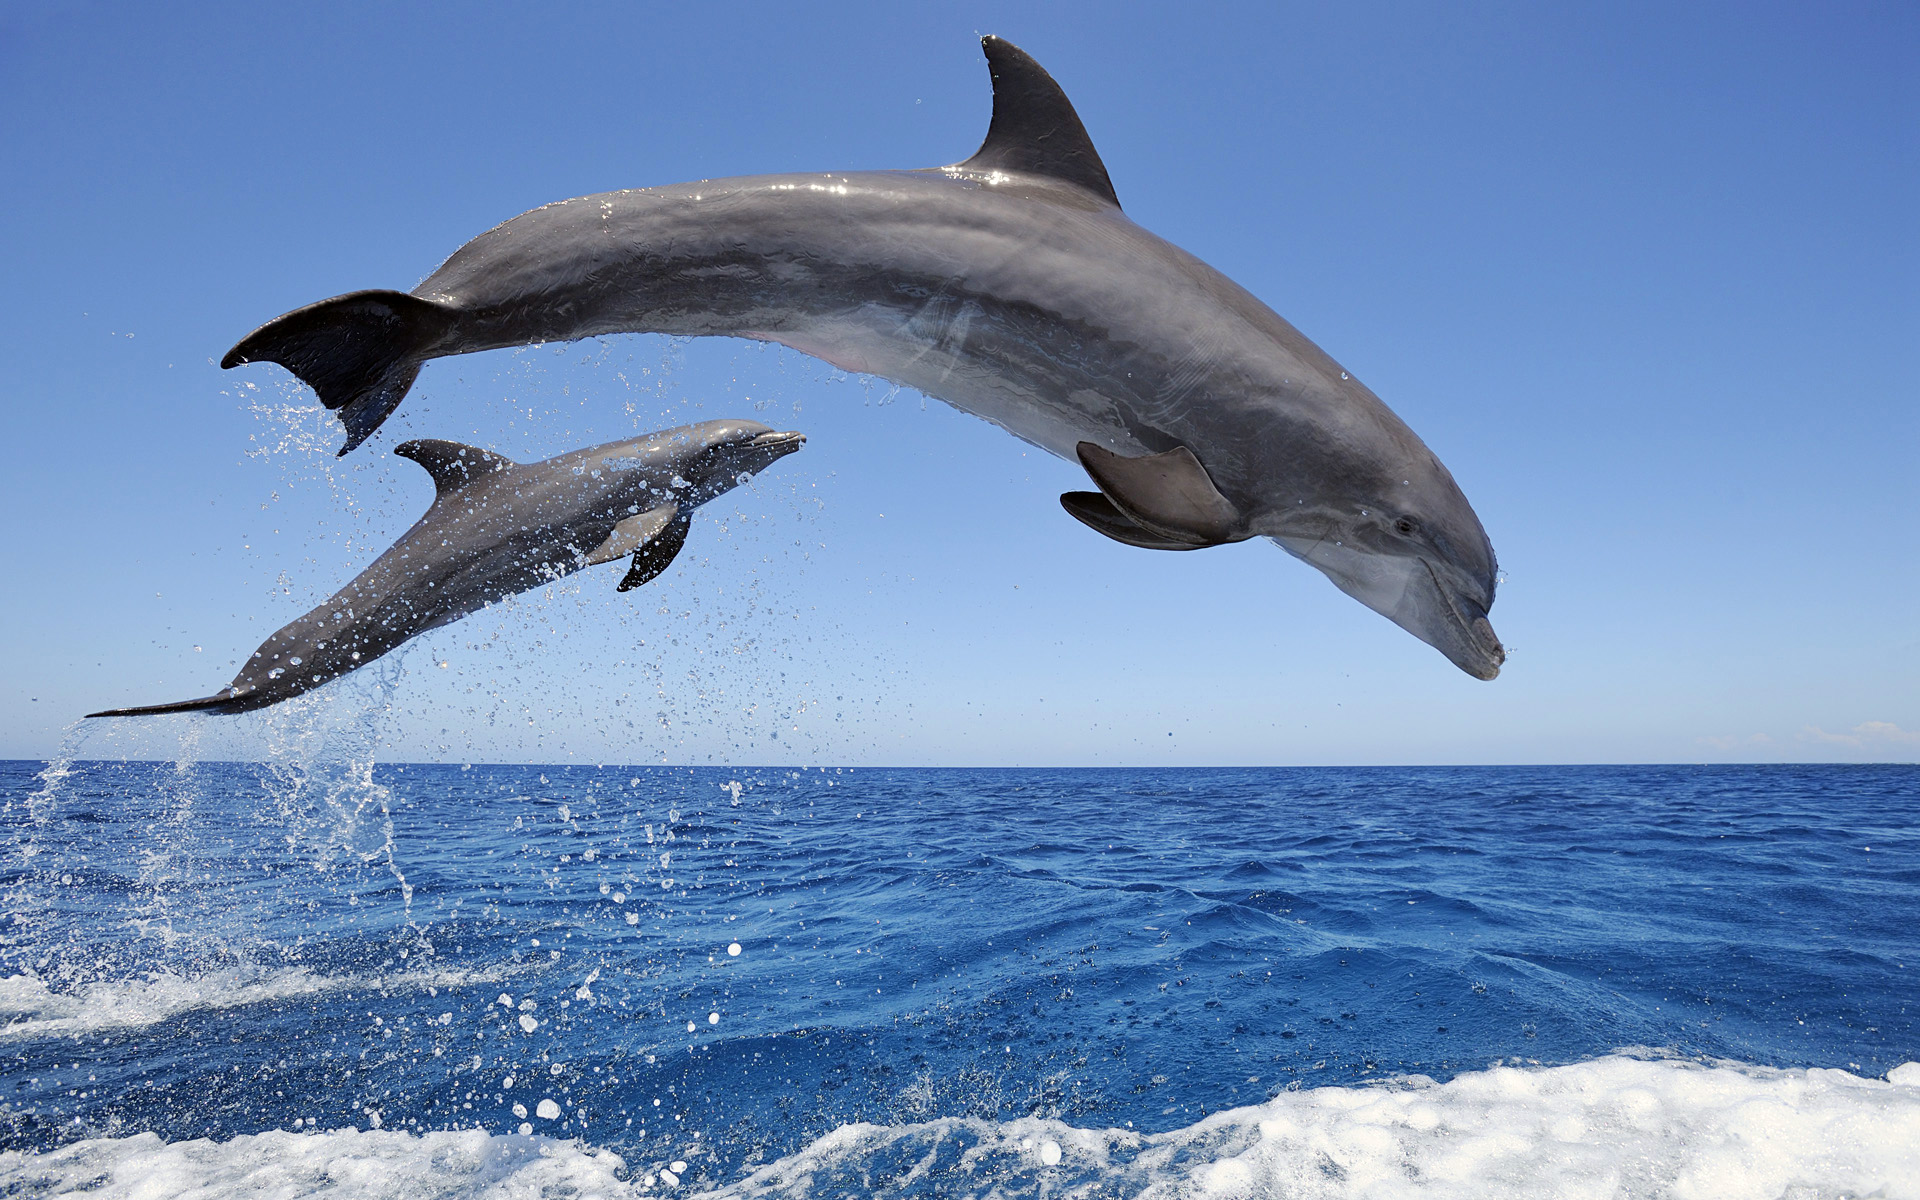 Common Bottlenose Dolphins 376.88 Kb